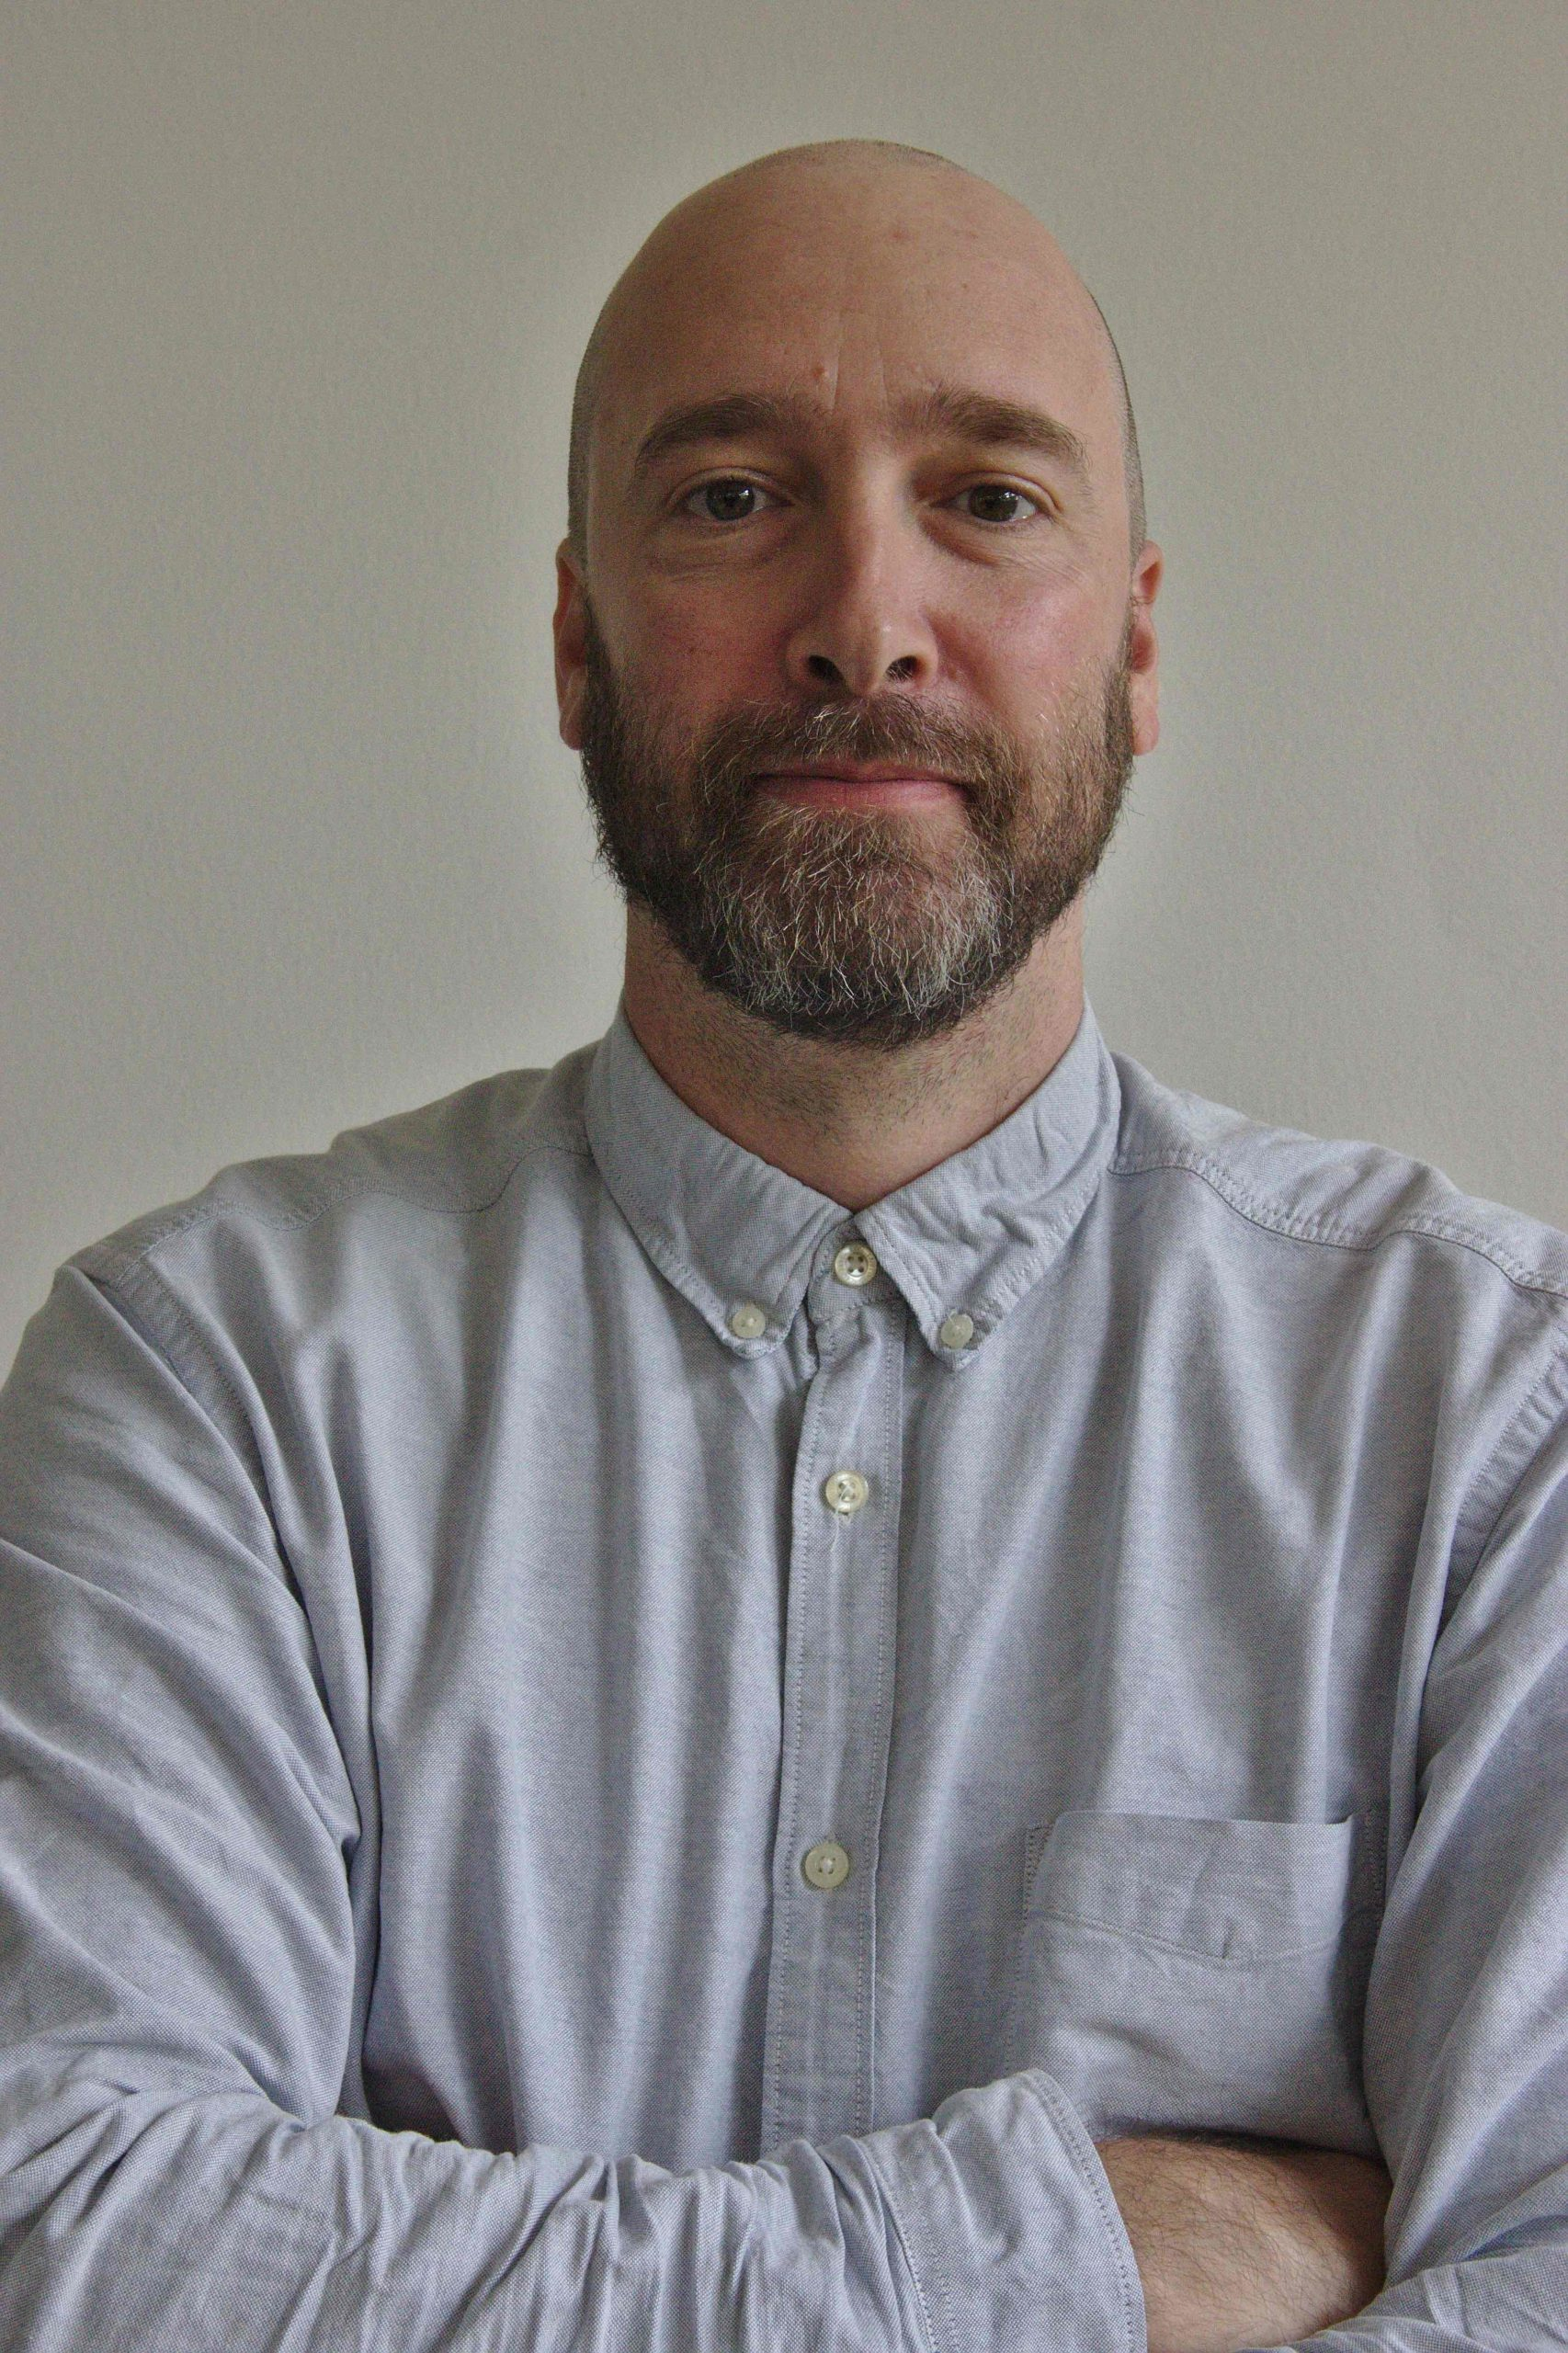 Thomas Copsey has joined our ranks as Marketing & Communications Manager at 138